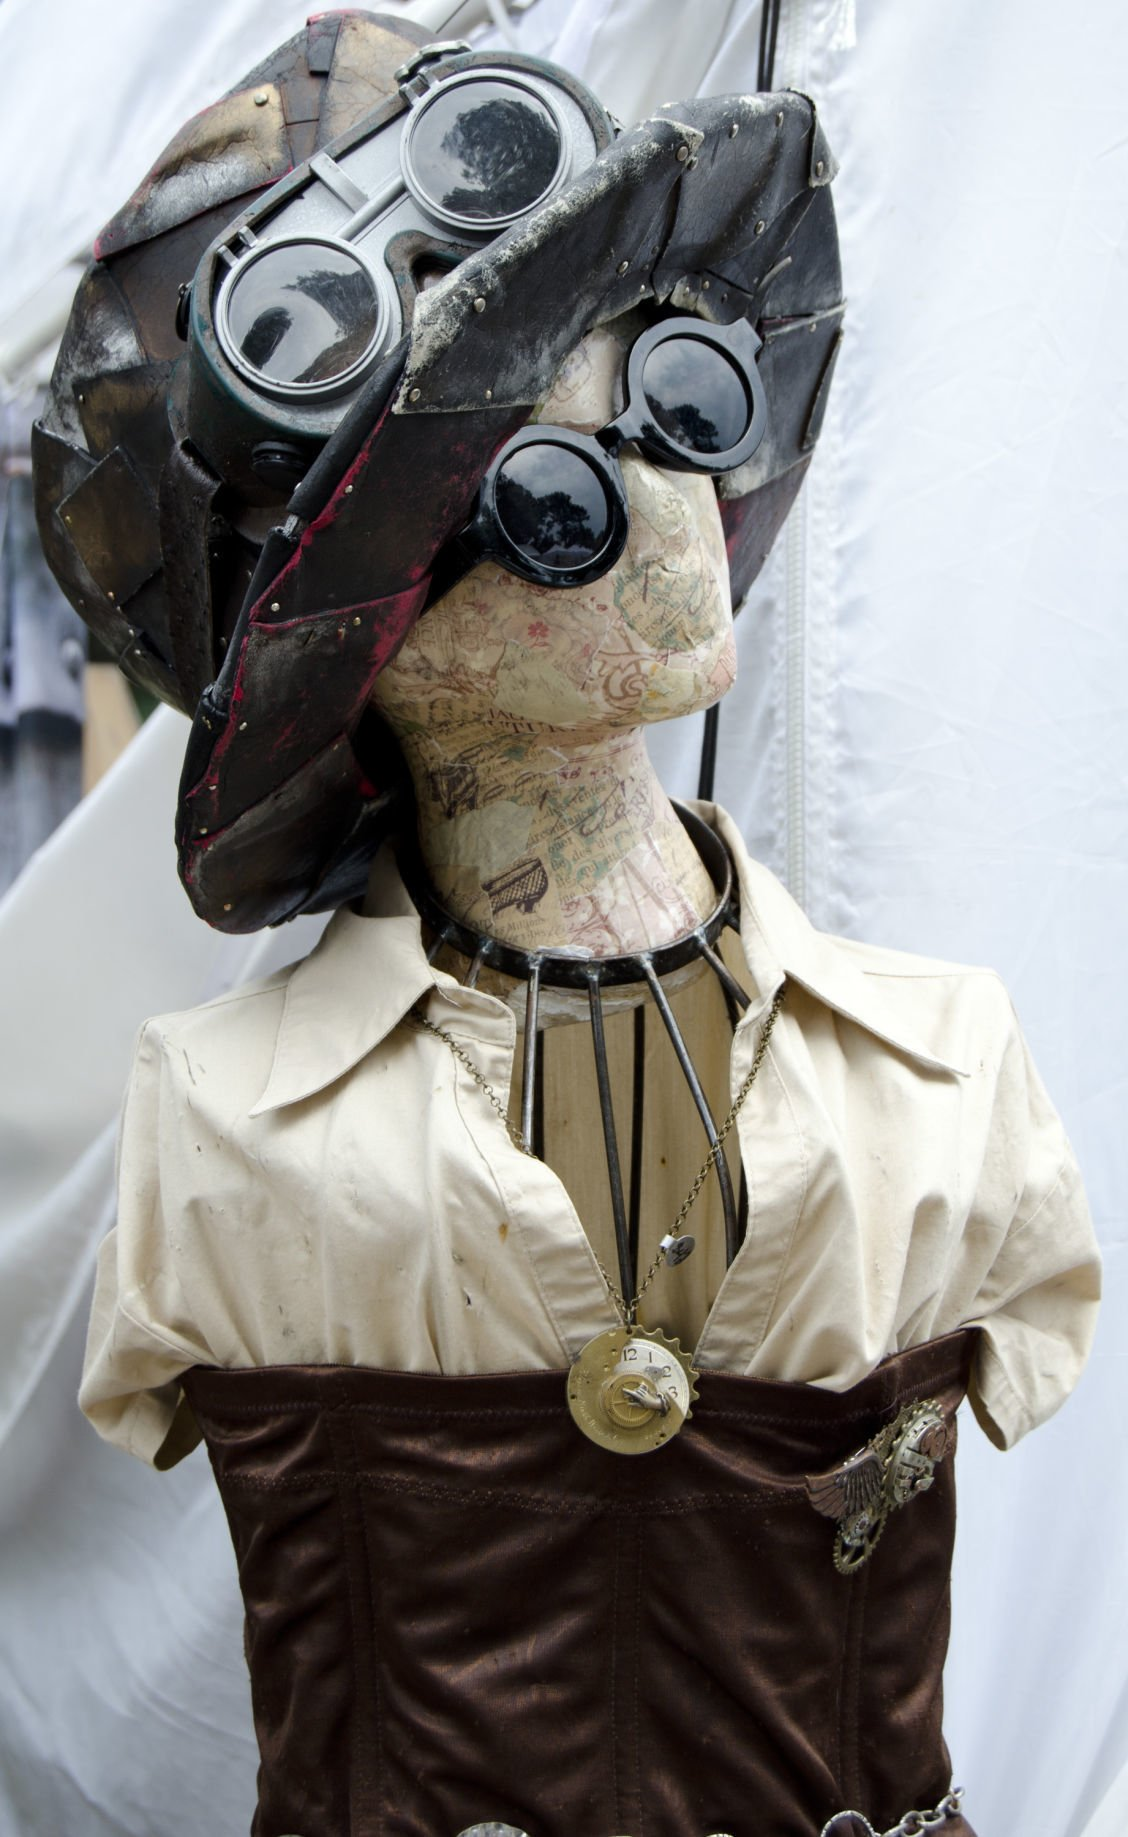 Steampunk Art by Laura and Terry Ross